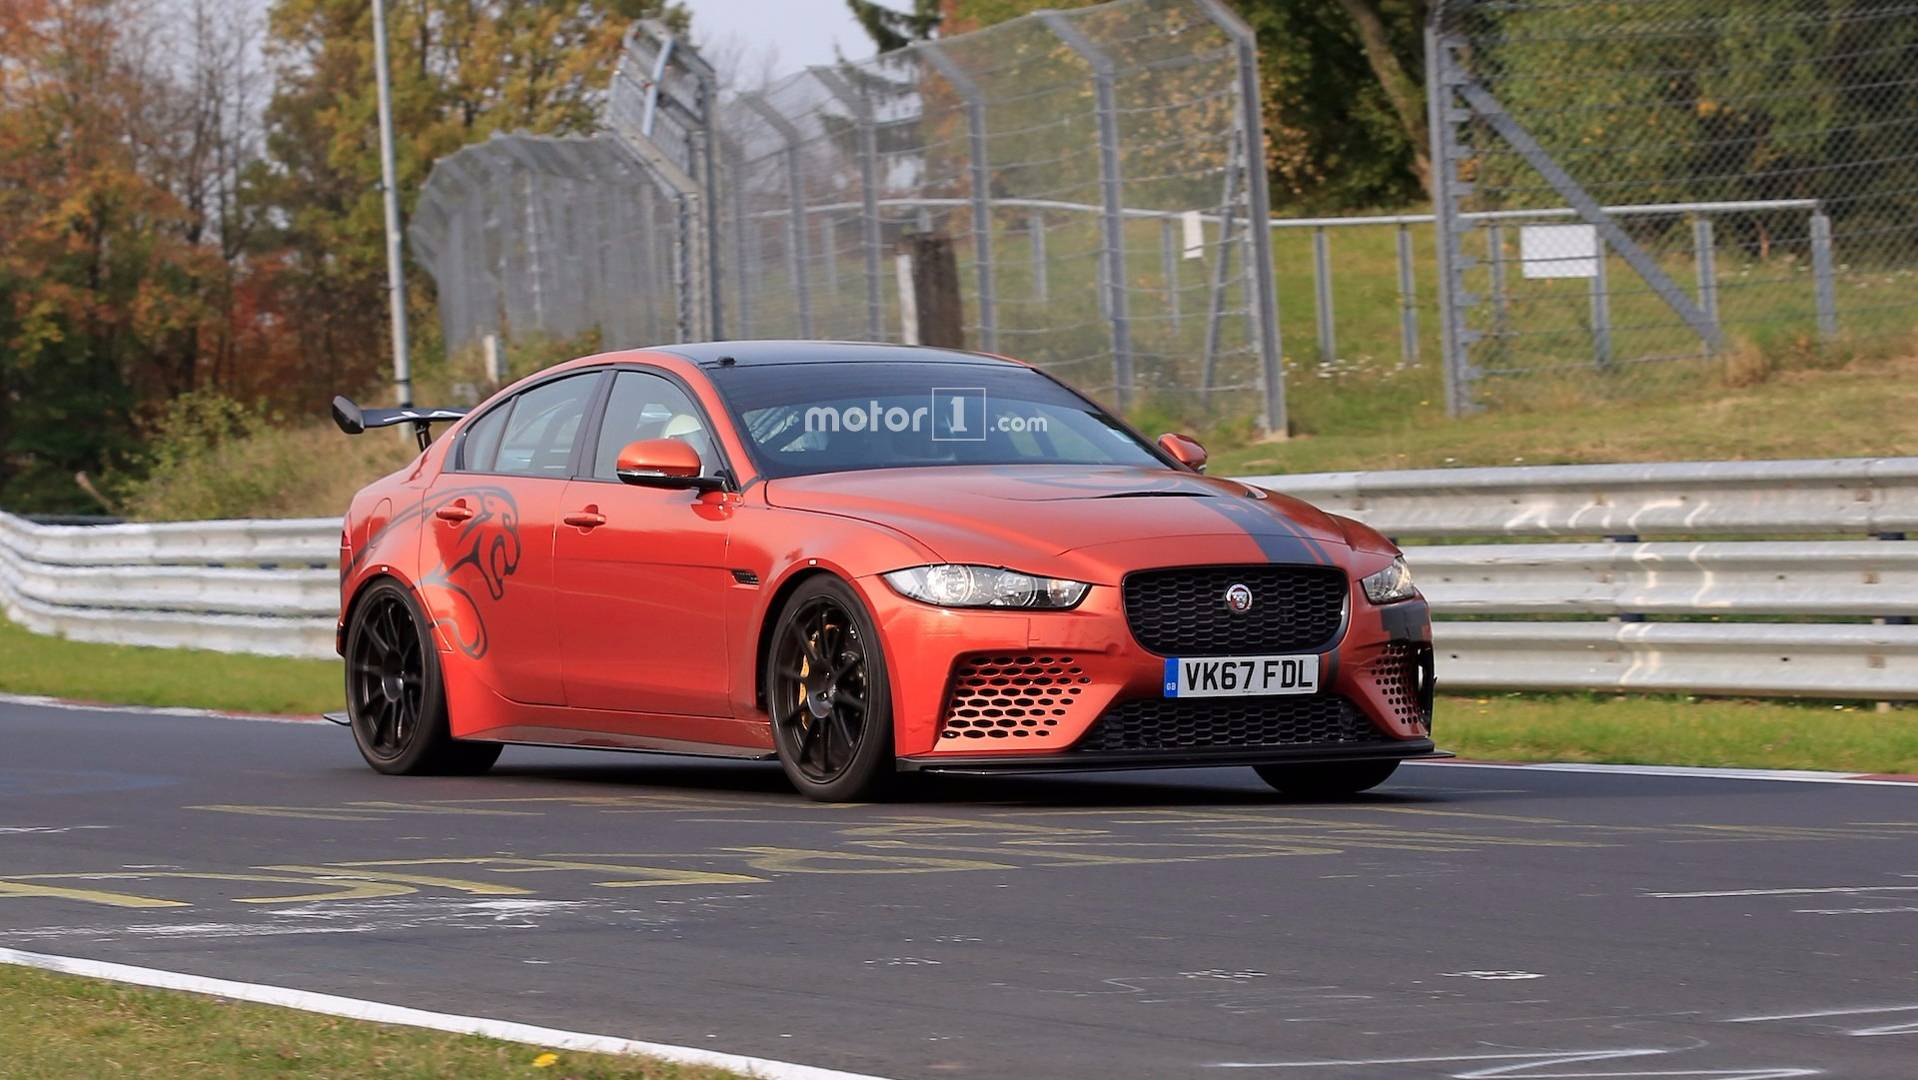 Jaguar Xe Sv Project 8 Jaguar Xe Sv Project 8 Spied On Nürburgring Gunning For